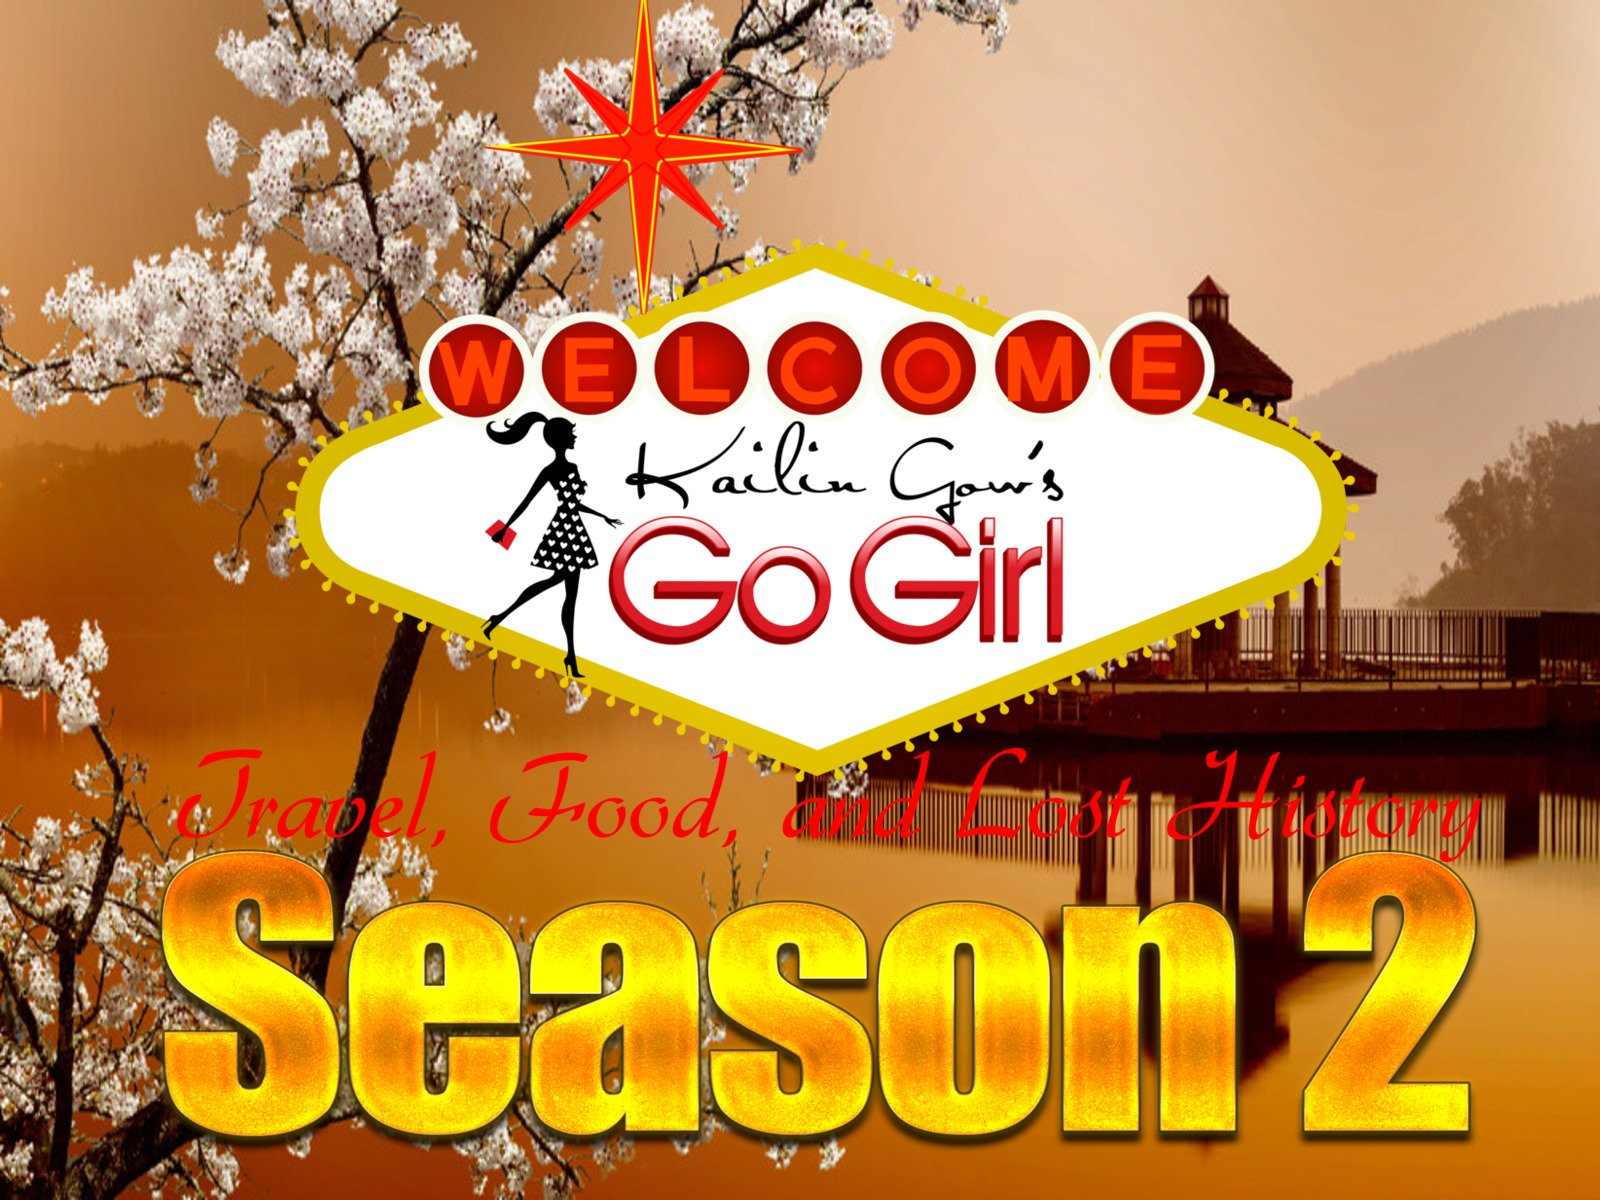 Kailin Gow's Go Girl - Season 2